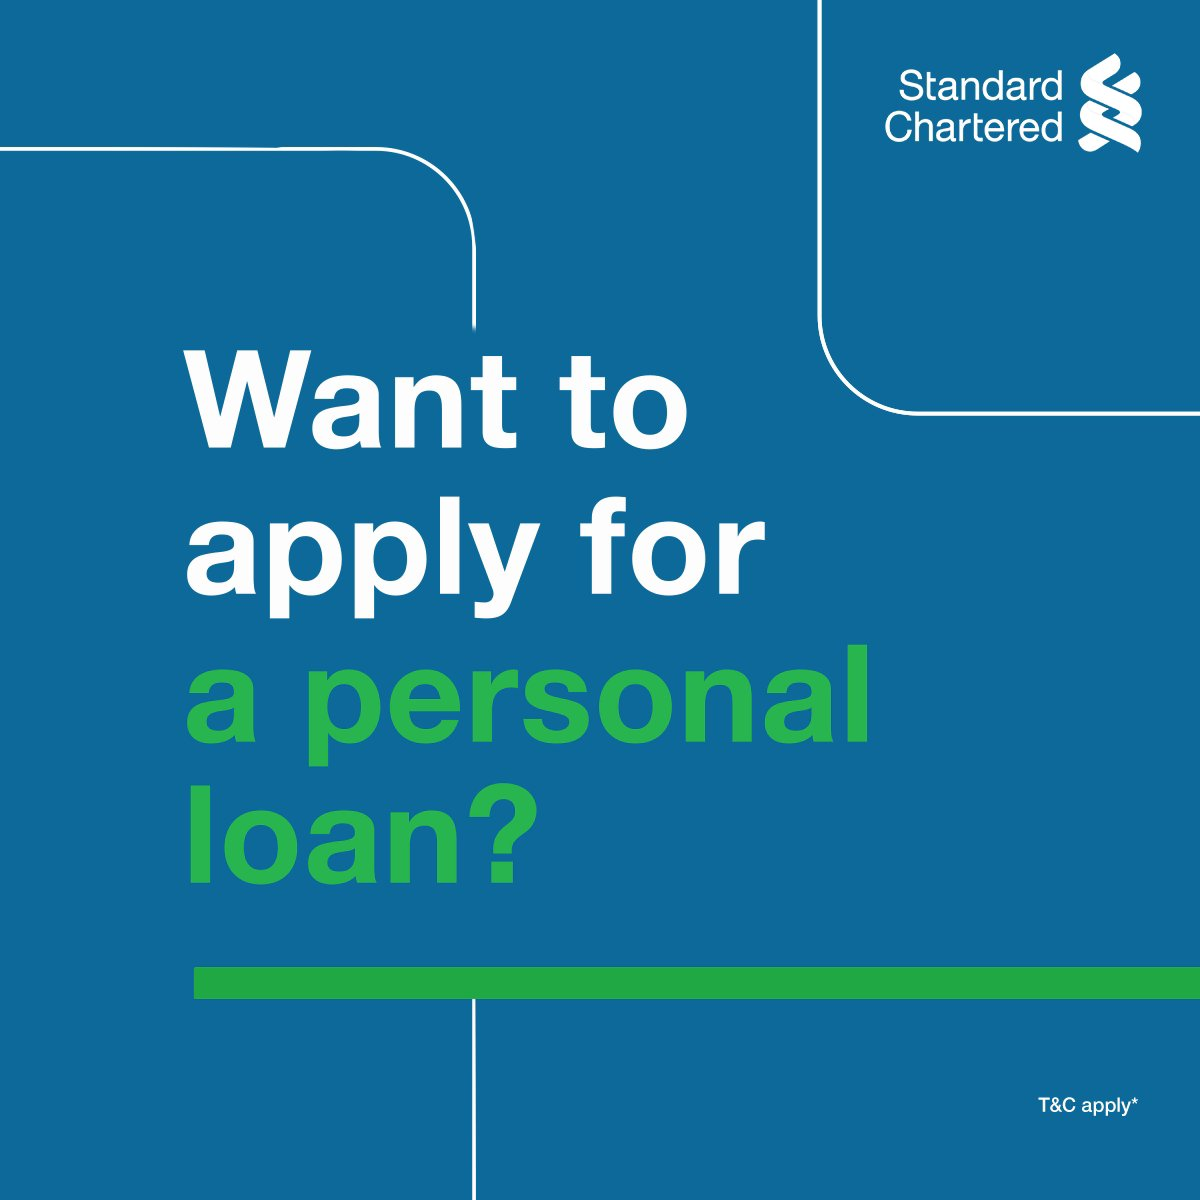 A personal loan minus the endless paperwork and trips to the bank? When you #TechItEasy, everything is possible! Apply from home with Standard Chartered's Video KYC facility for hassle-free and instant loans. To know more,